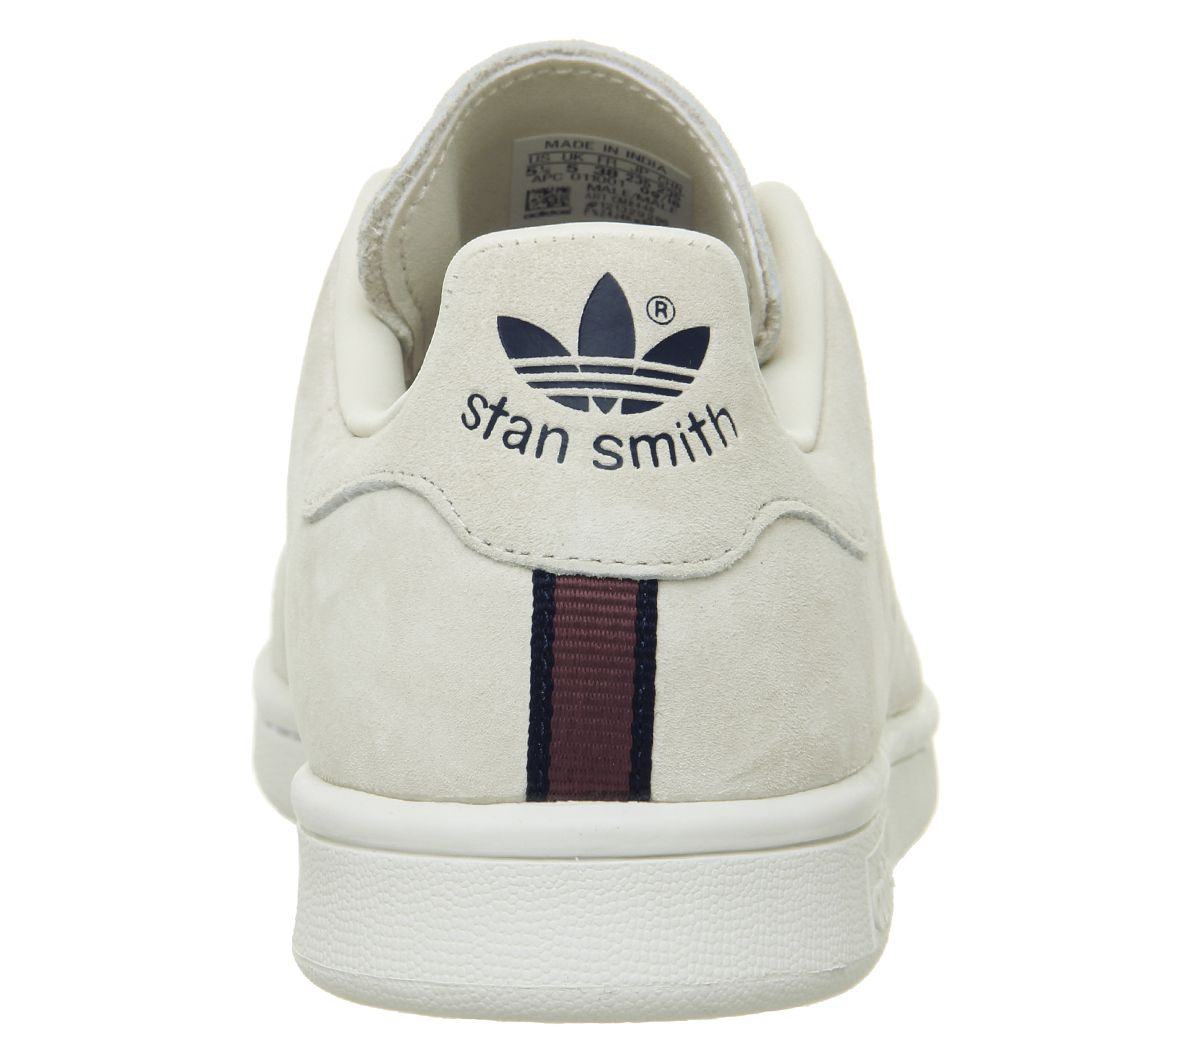 new styles 8f6a7 a965d Homme-Adidas-Stan-Smith-Baskets-Blanc-Craie-Blanc-